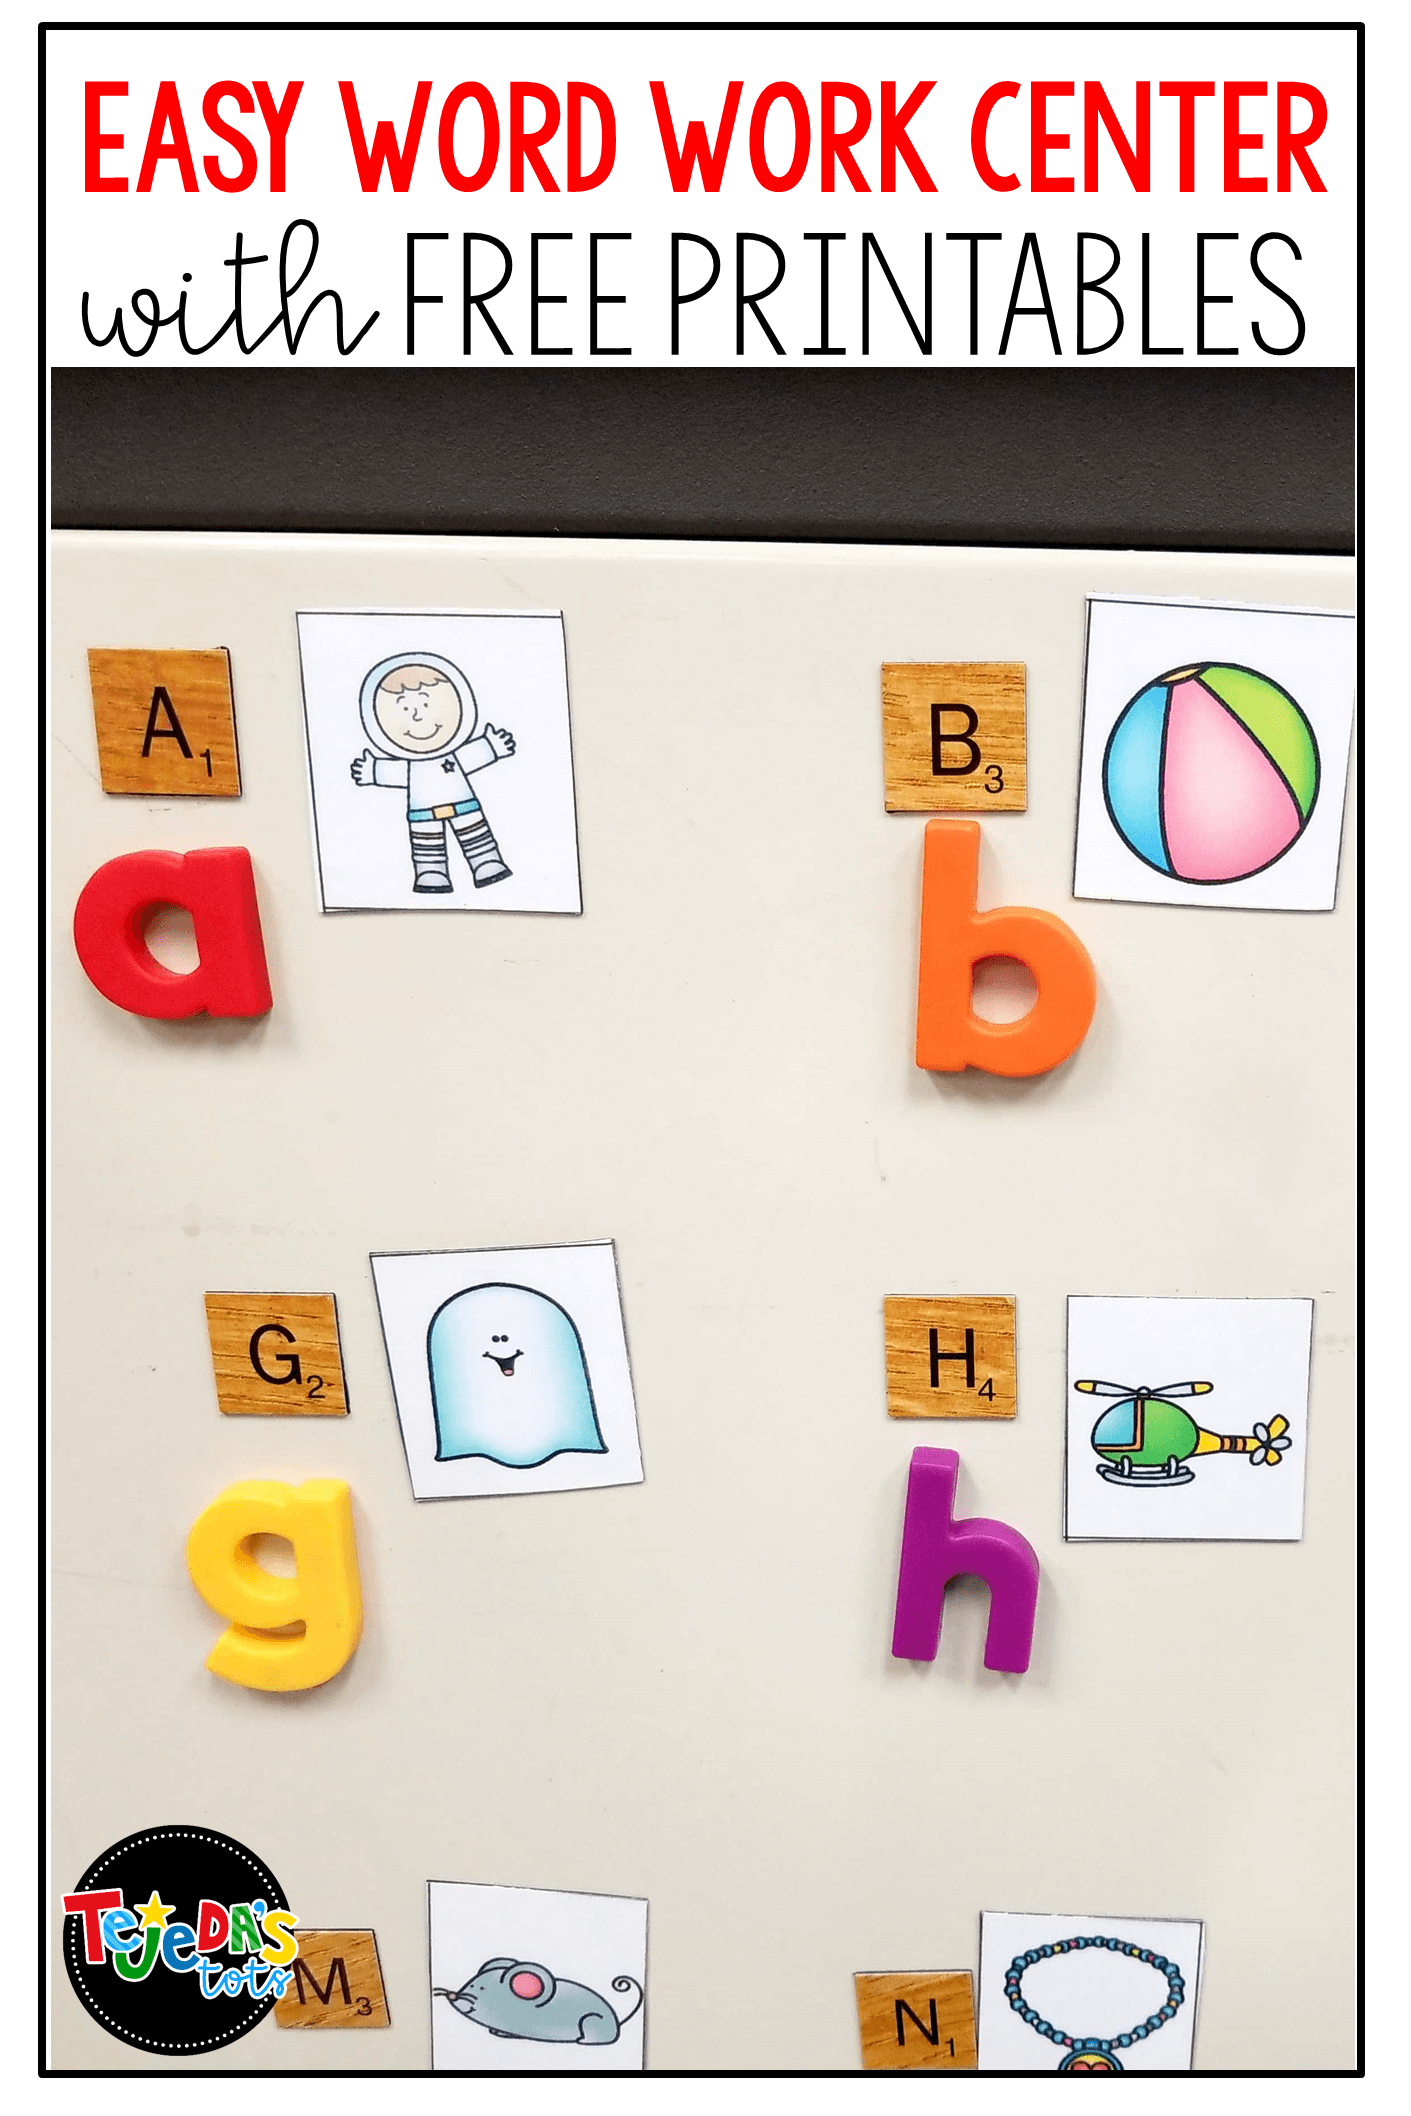 Free Scrabble tile center ideas and printables. Easy, fun word work center for kindergarten and first grade students. Simply place the magnetic tiles onto a file cabinet or metal surface and kids can use for matching upper to lowercase, pictures to beginning sounds, building cvc or sight words, and more! #tejedastots #wordworkcenter